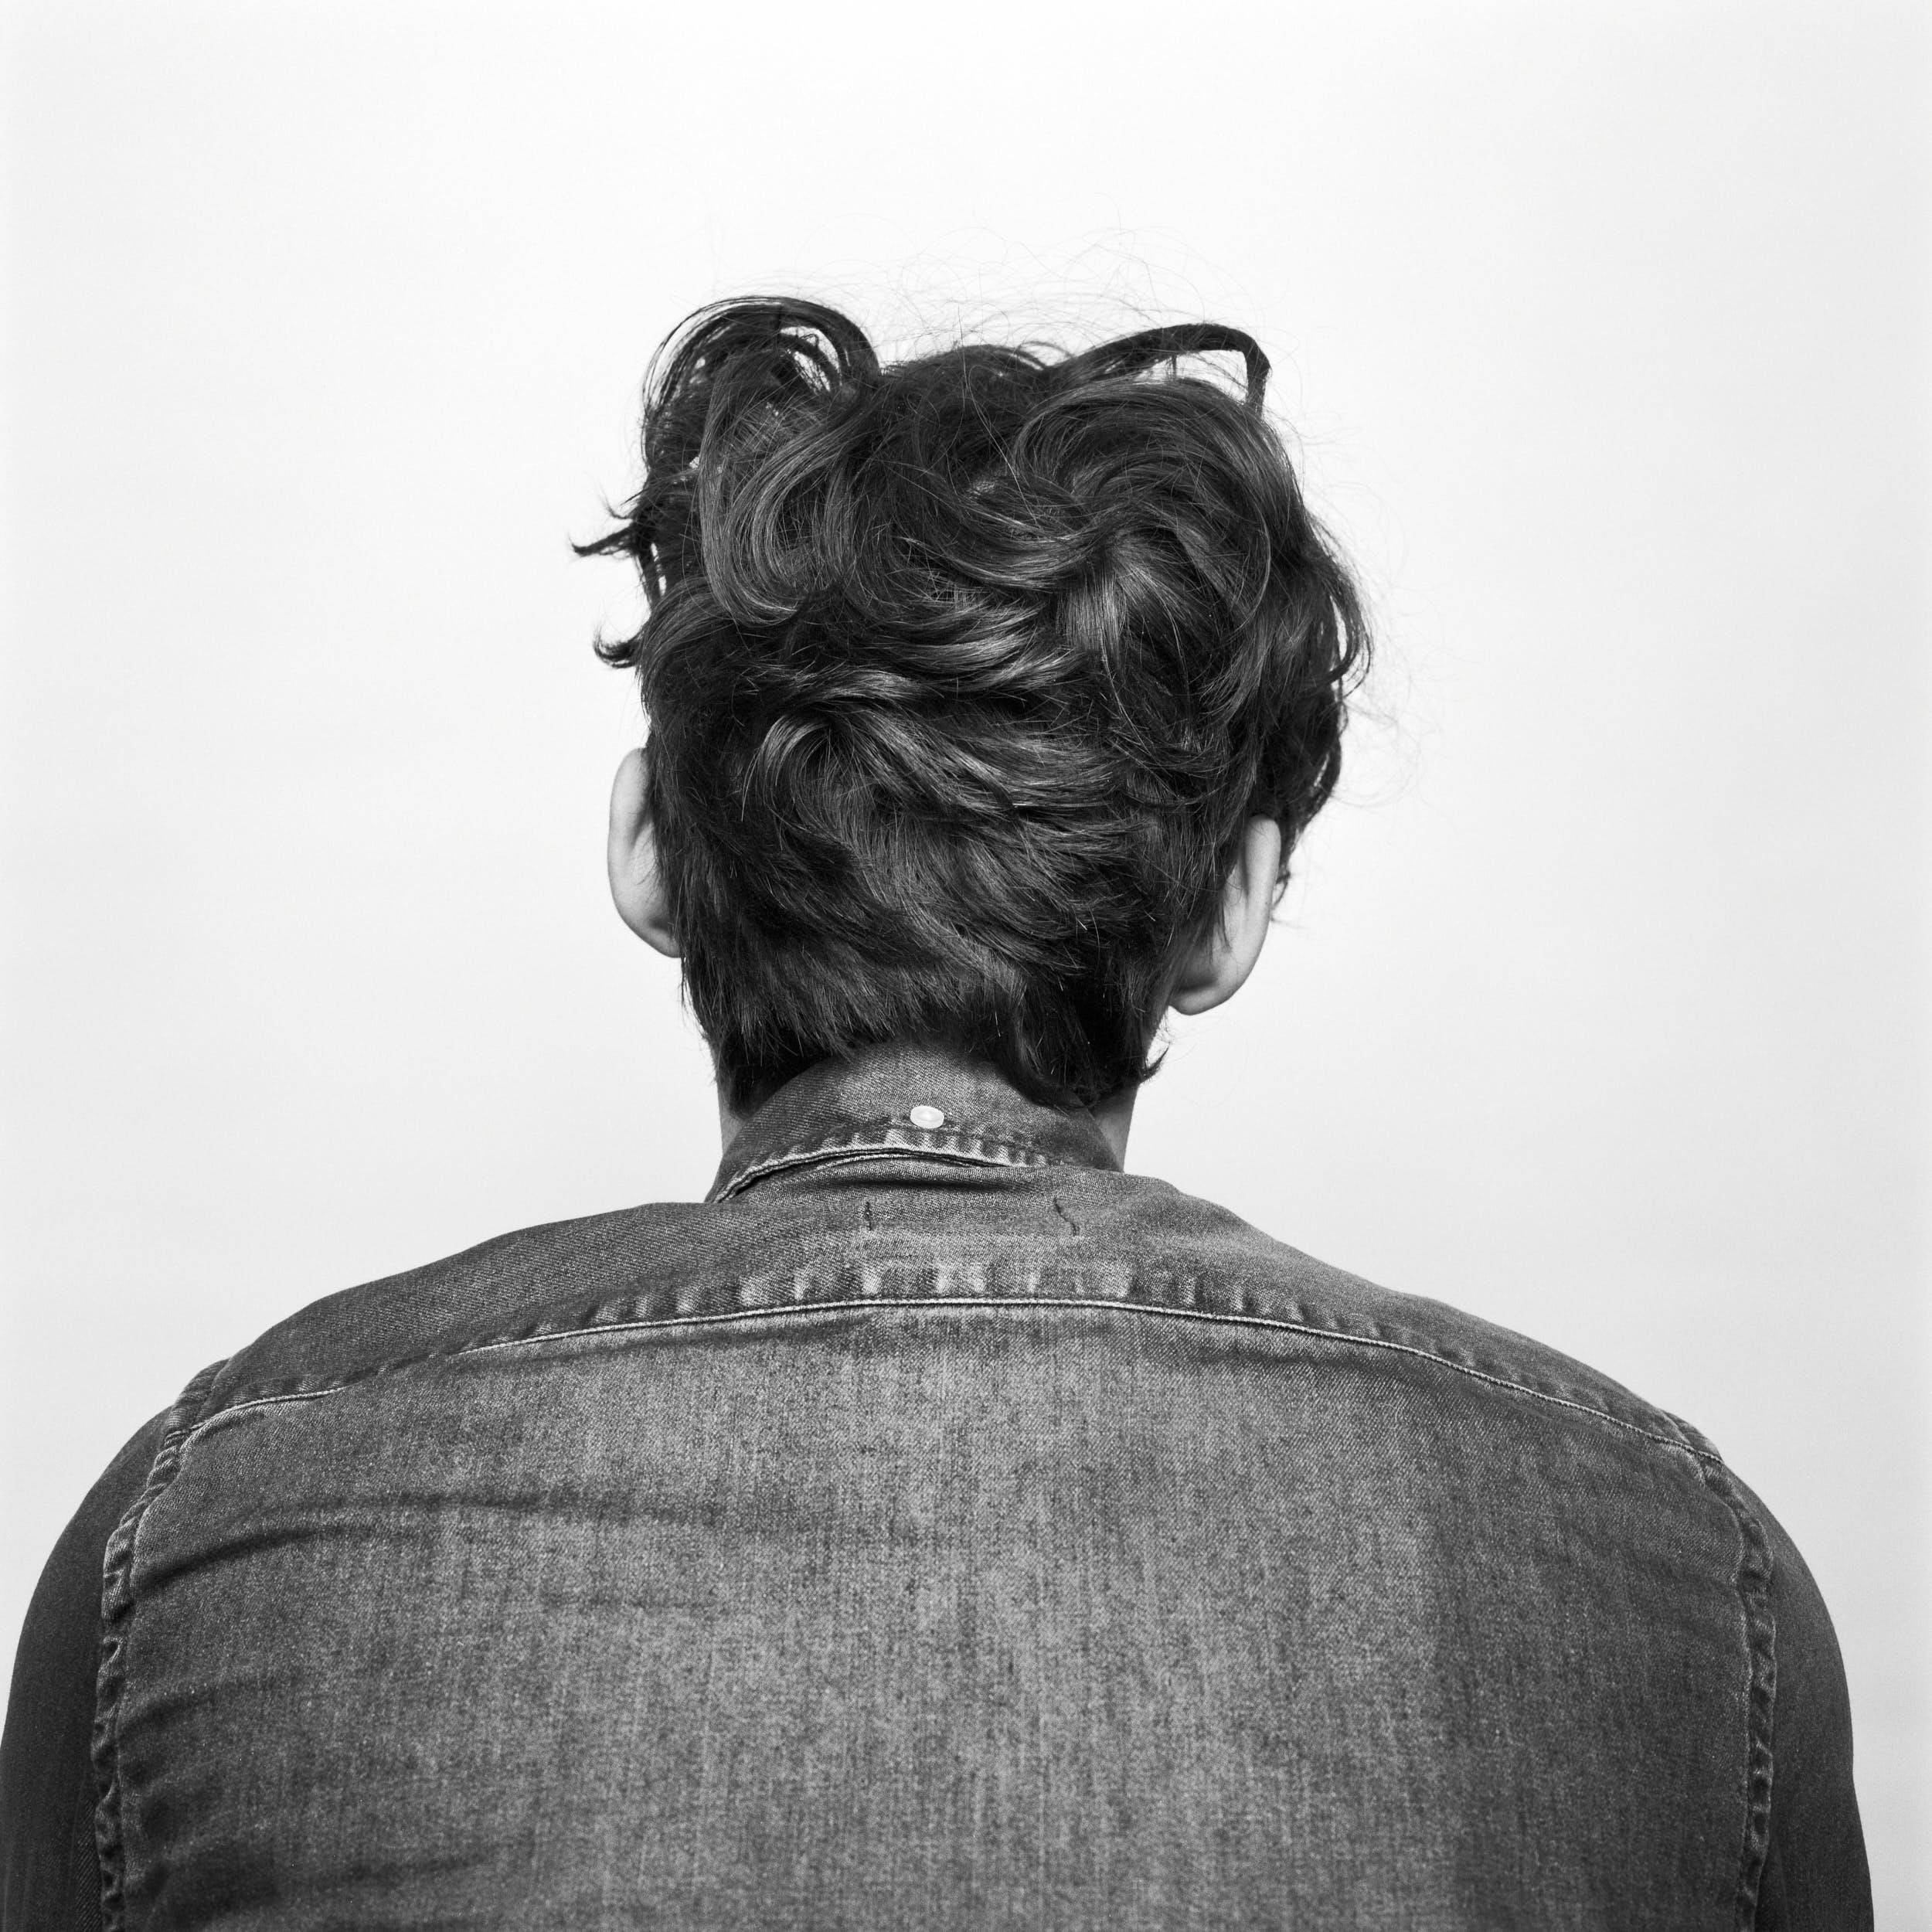 Studio portrait photography: man with curly hair and denim shirt turned away from the camera.